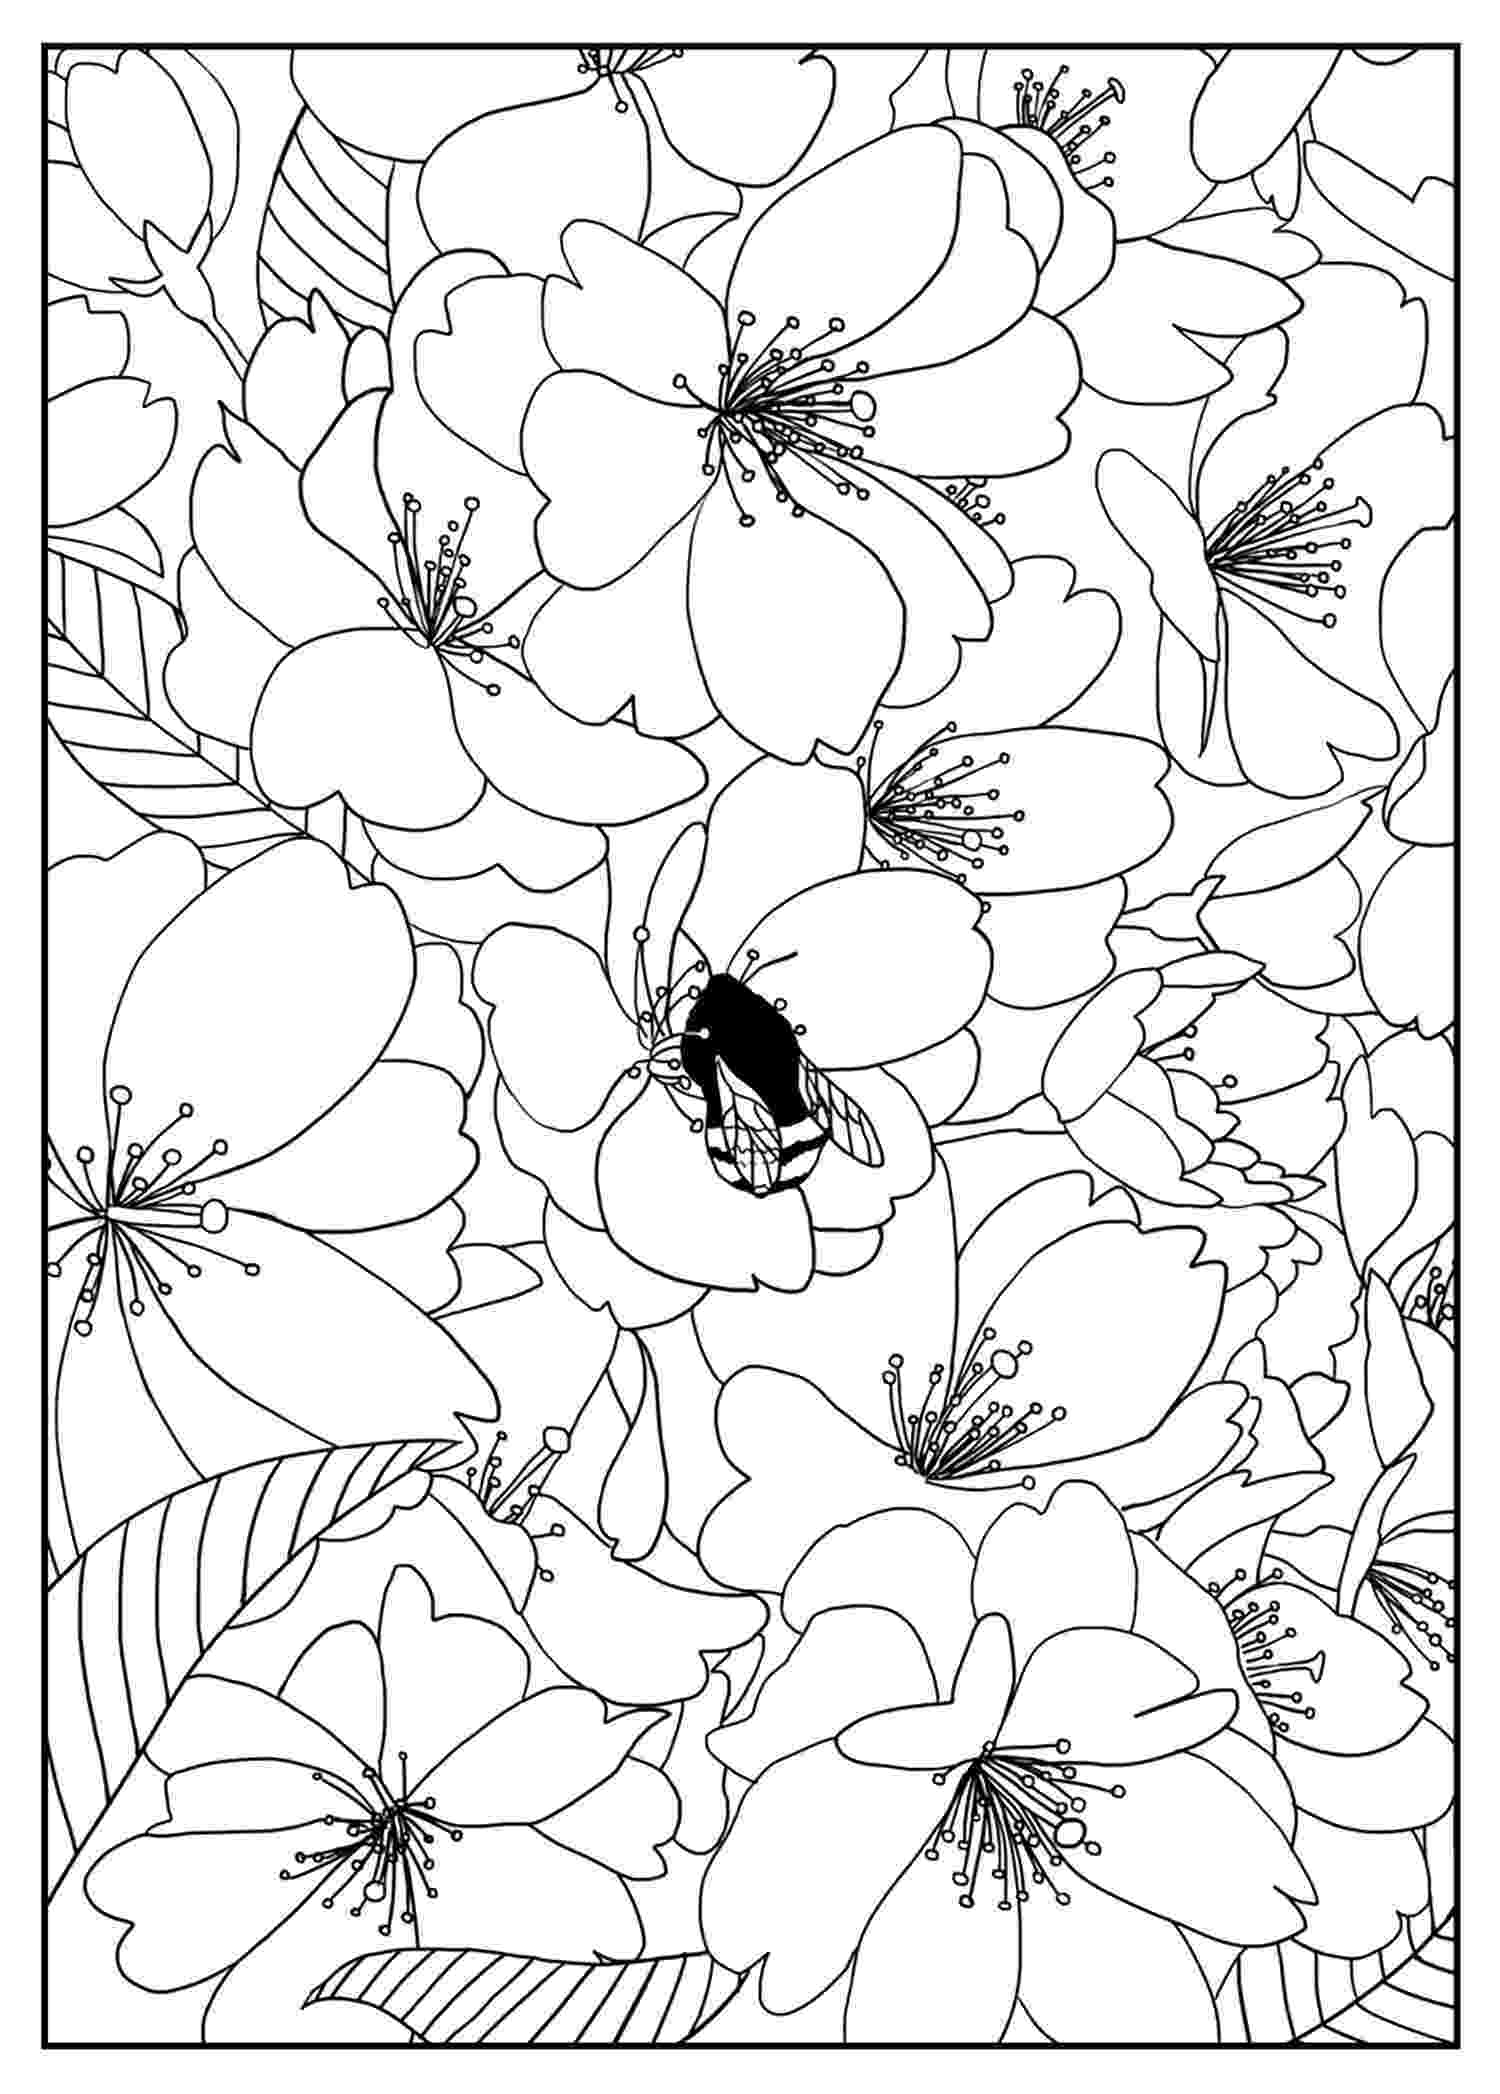 flowers coloring pages for kids free printable flower coloring pages for kids best for flowers pages coloring kids 1 1